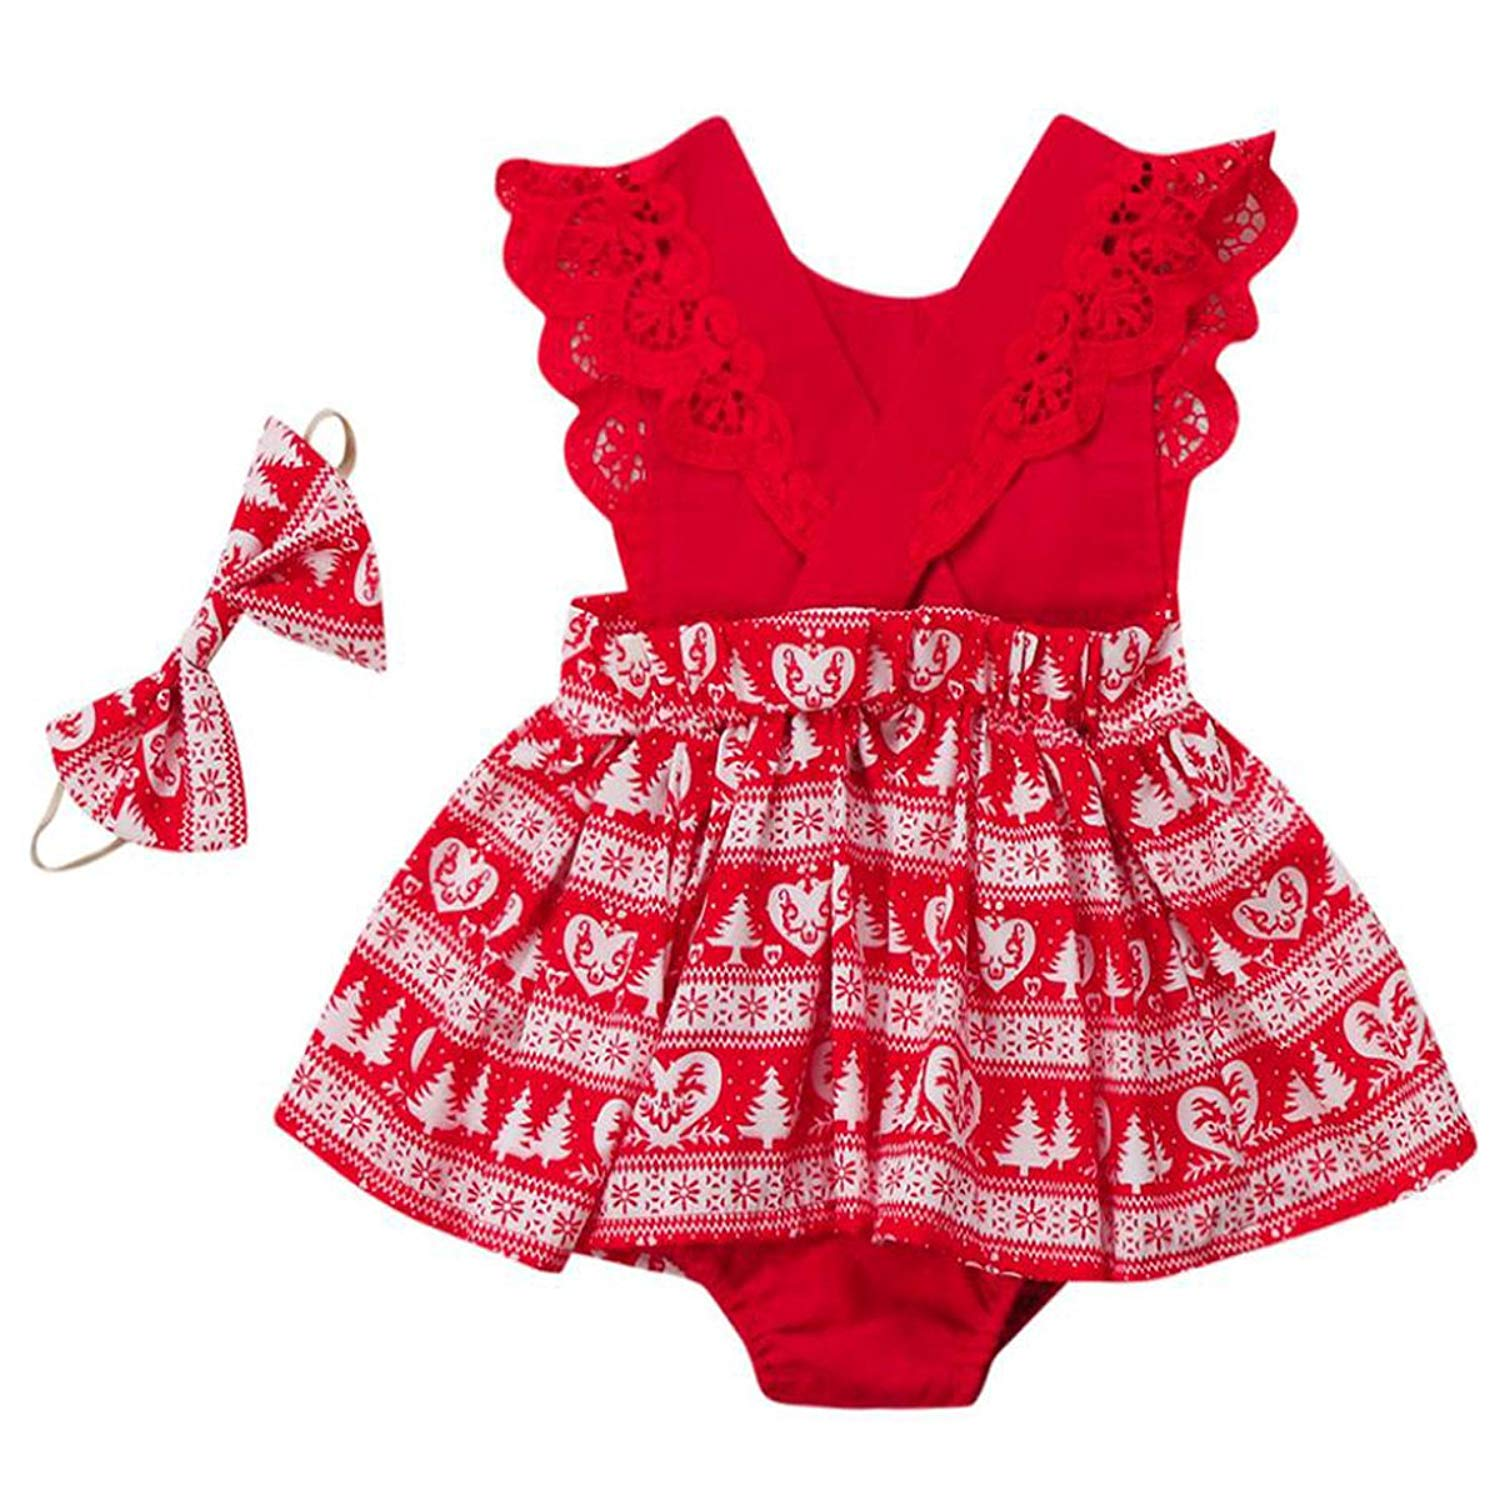 d673505d1955 Get Quotations · YJM Baby Girl 2PC Christmas Outfit